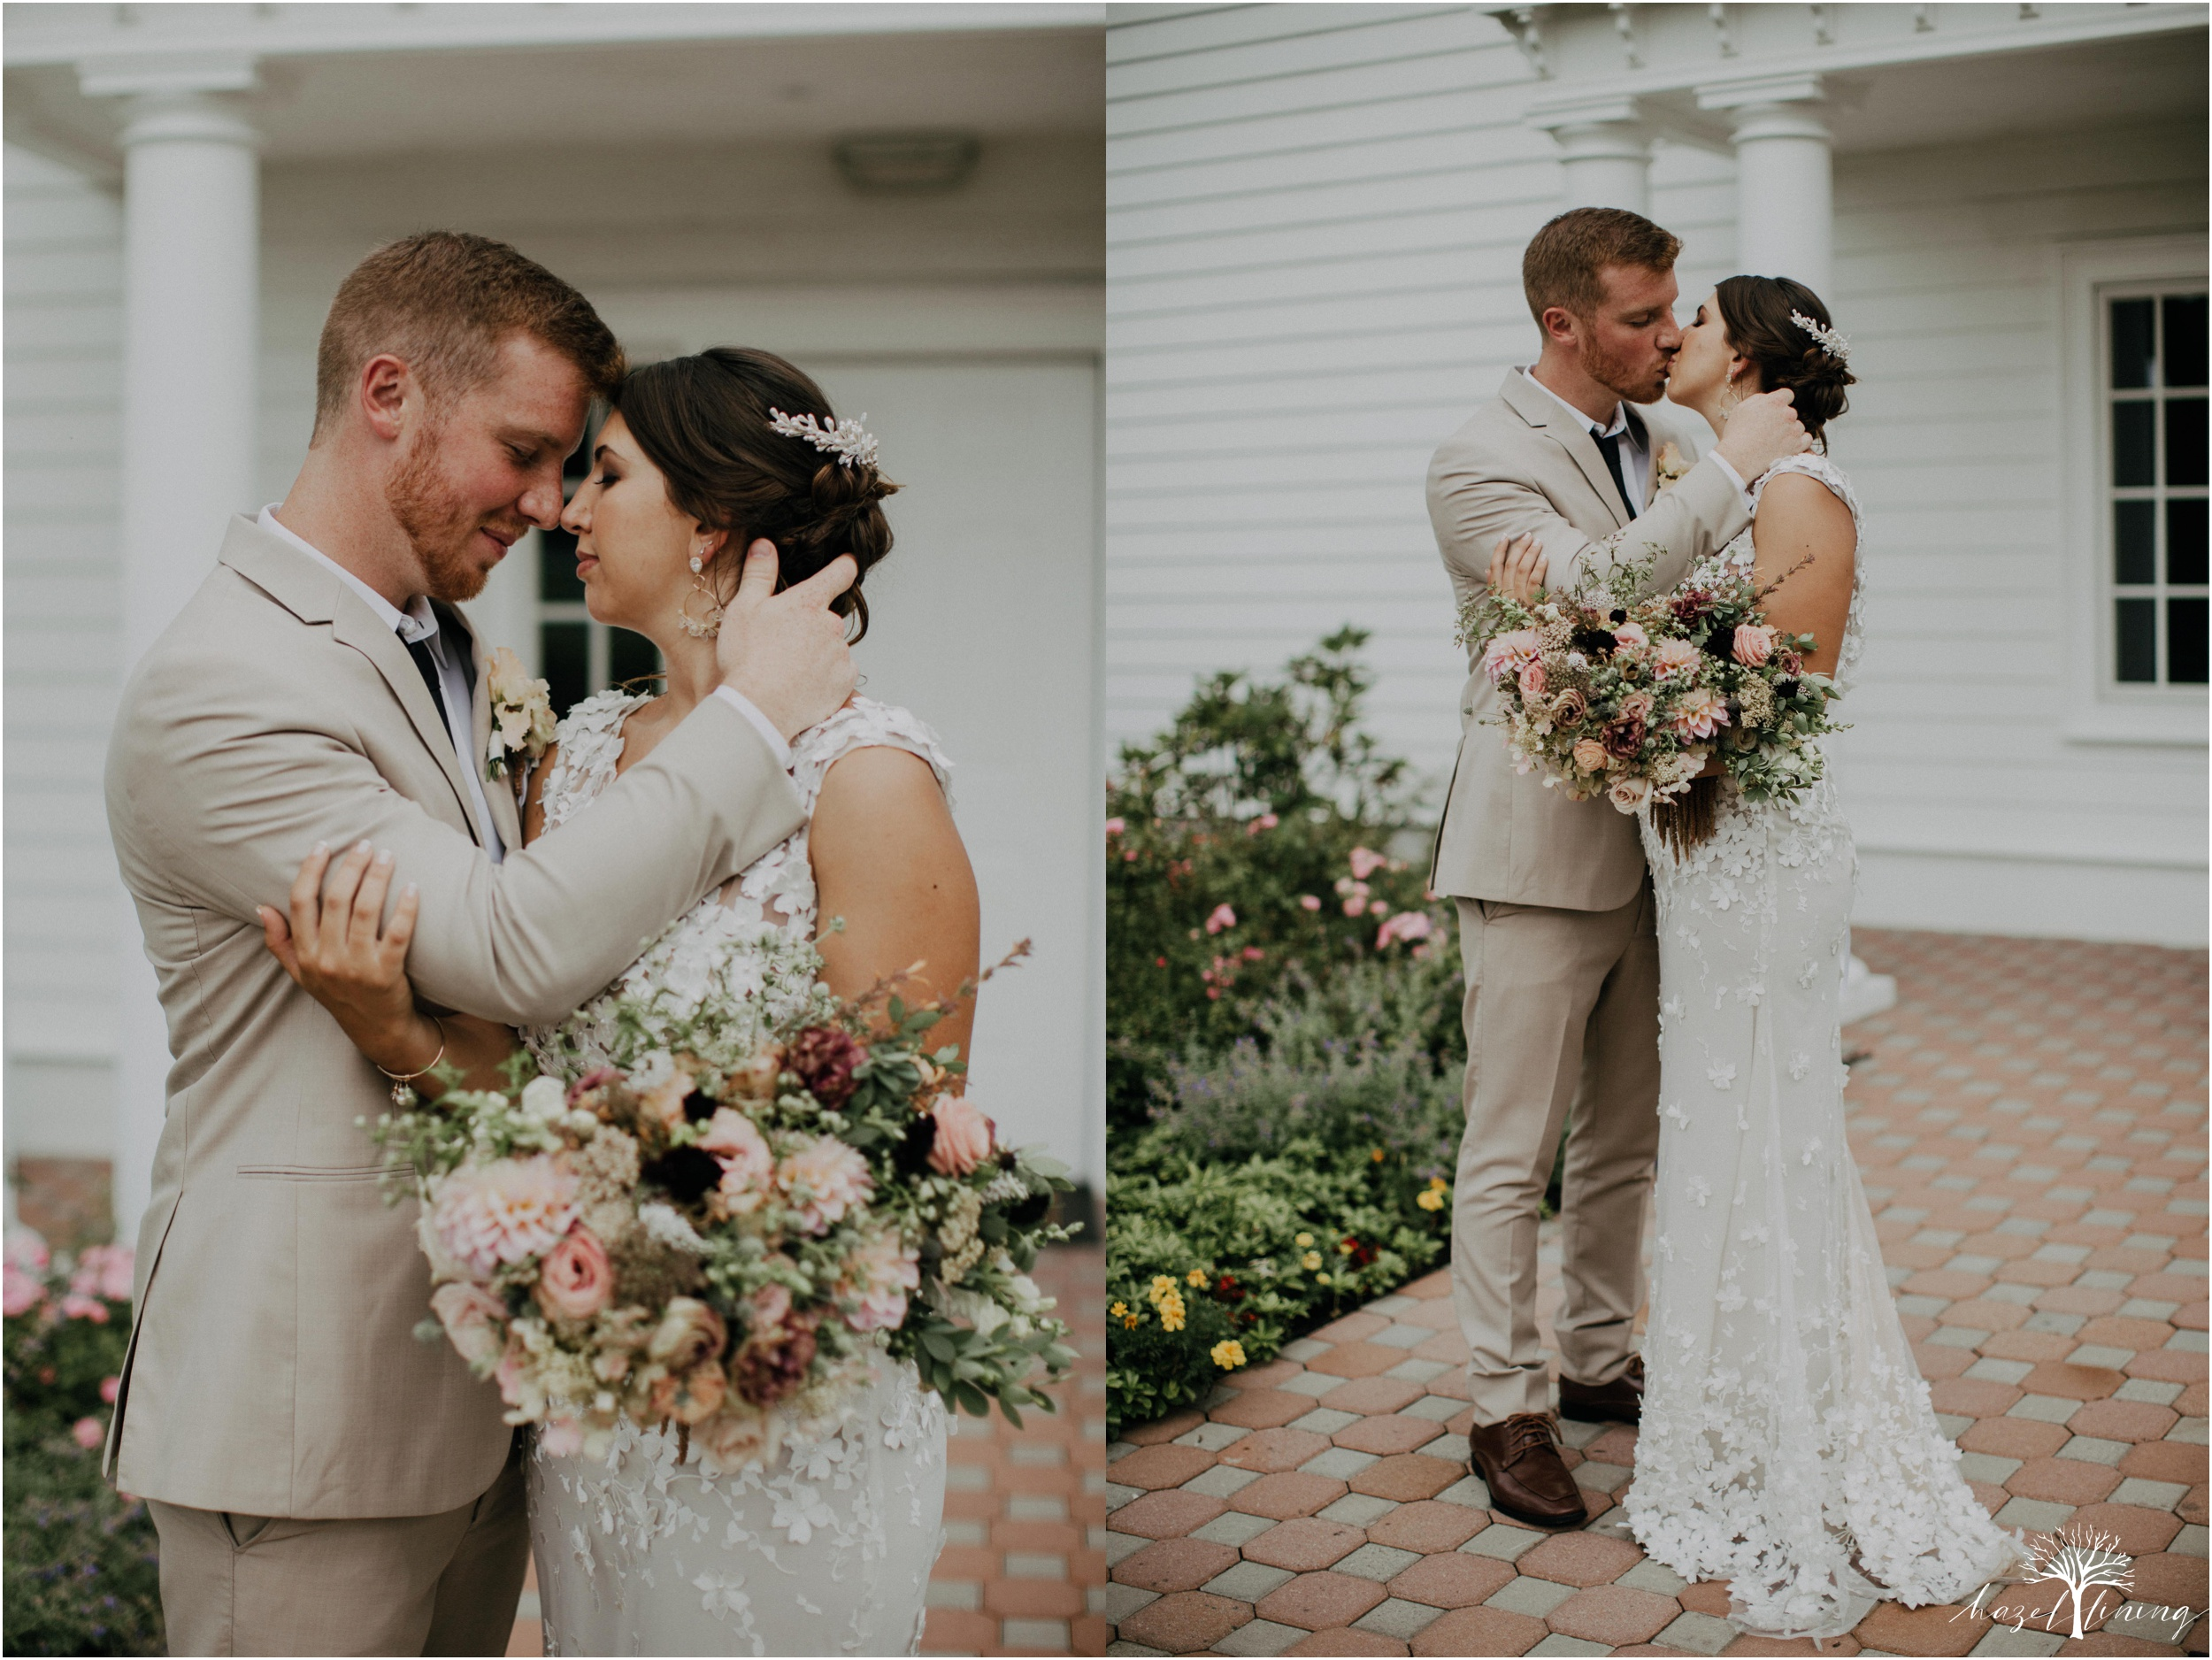 carl-chloe-the-ryland-inn-whitehouse-station-new-jersey-styled-squad-hazel-lining-photography-destination-elopement-wedding-engagement-photography_0034.jpg